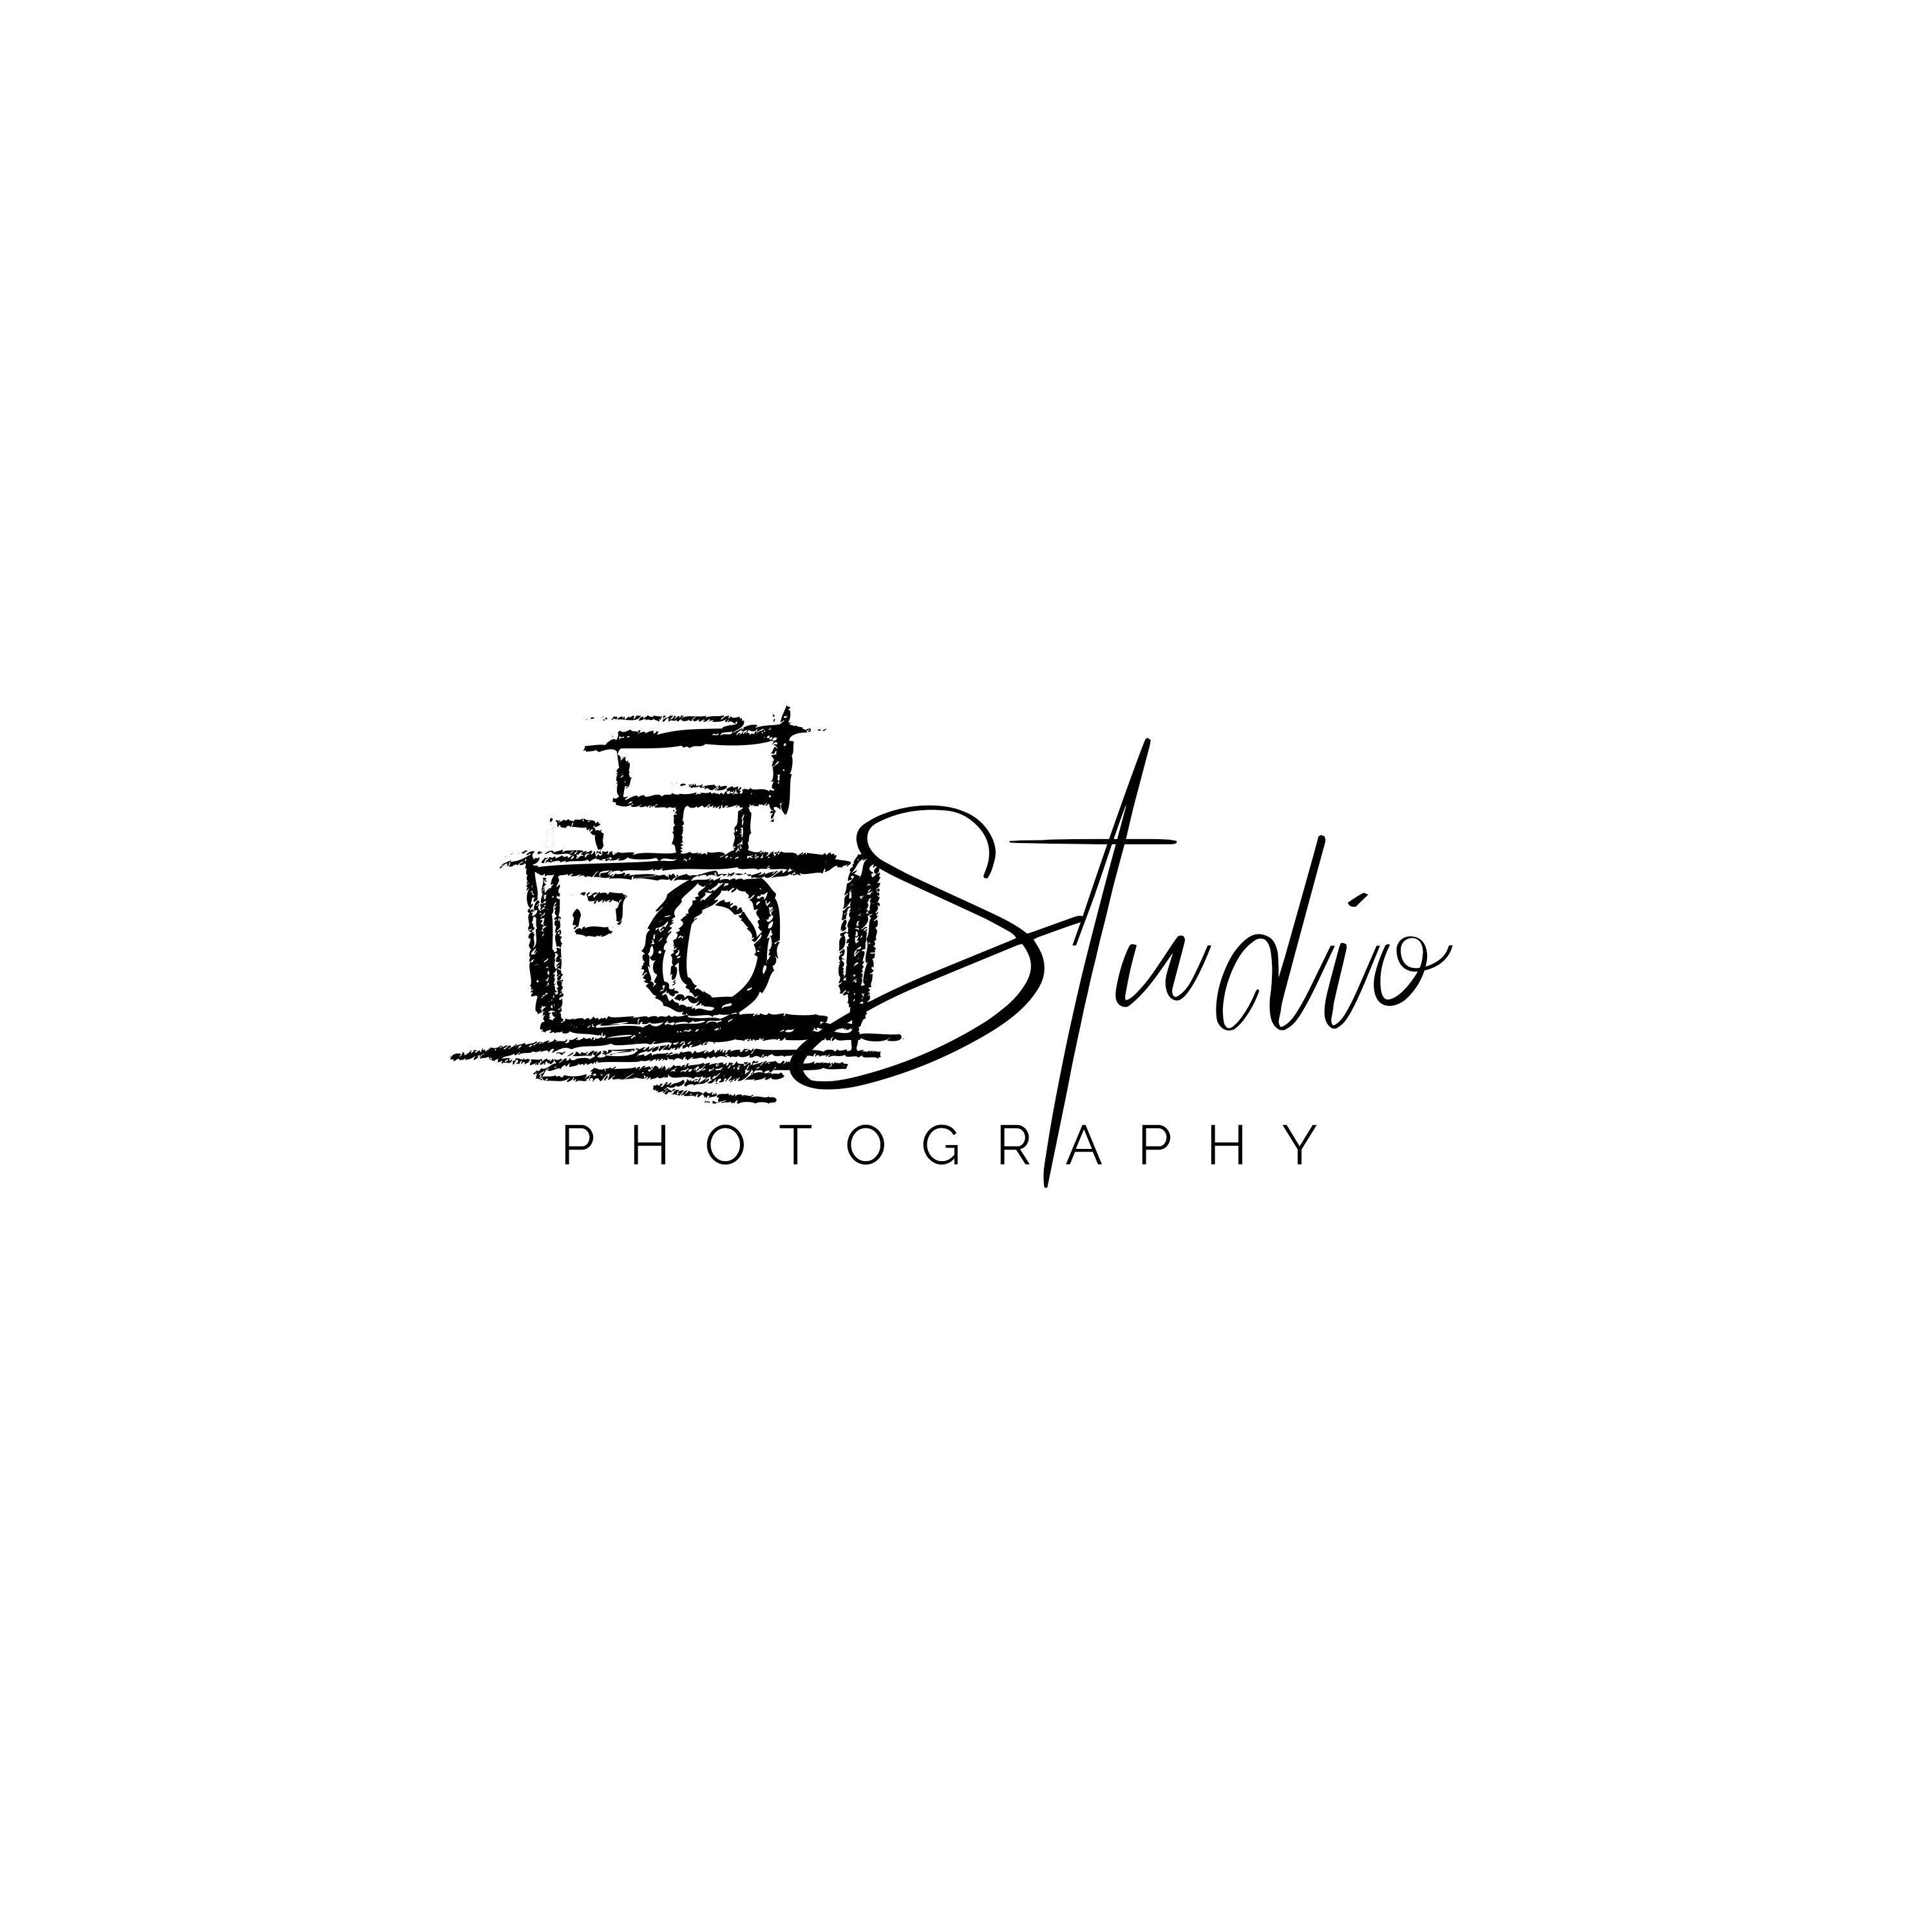 Photography Logo Design Premade Studio Logo Camera Logo Feminine Logo Wedding Photography Photography Camera Logos Design Camera Logo Photo Logo Design